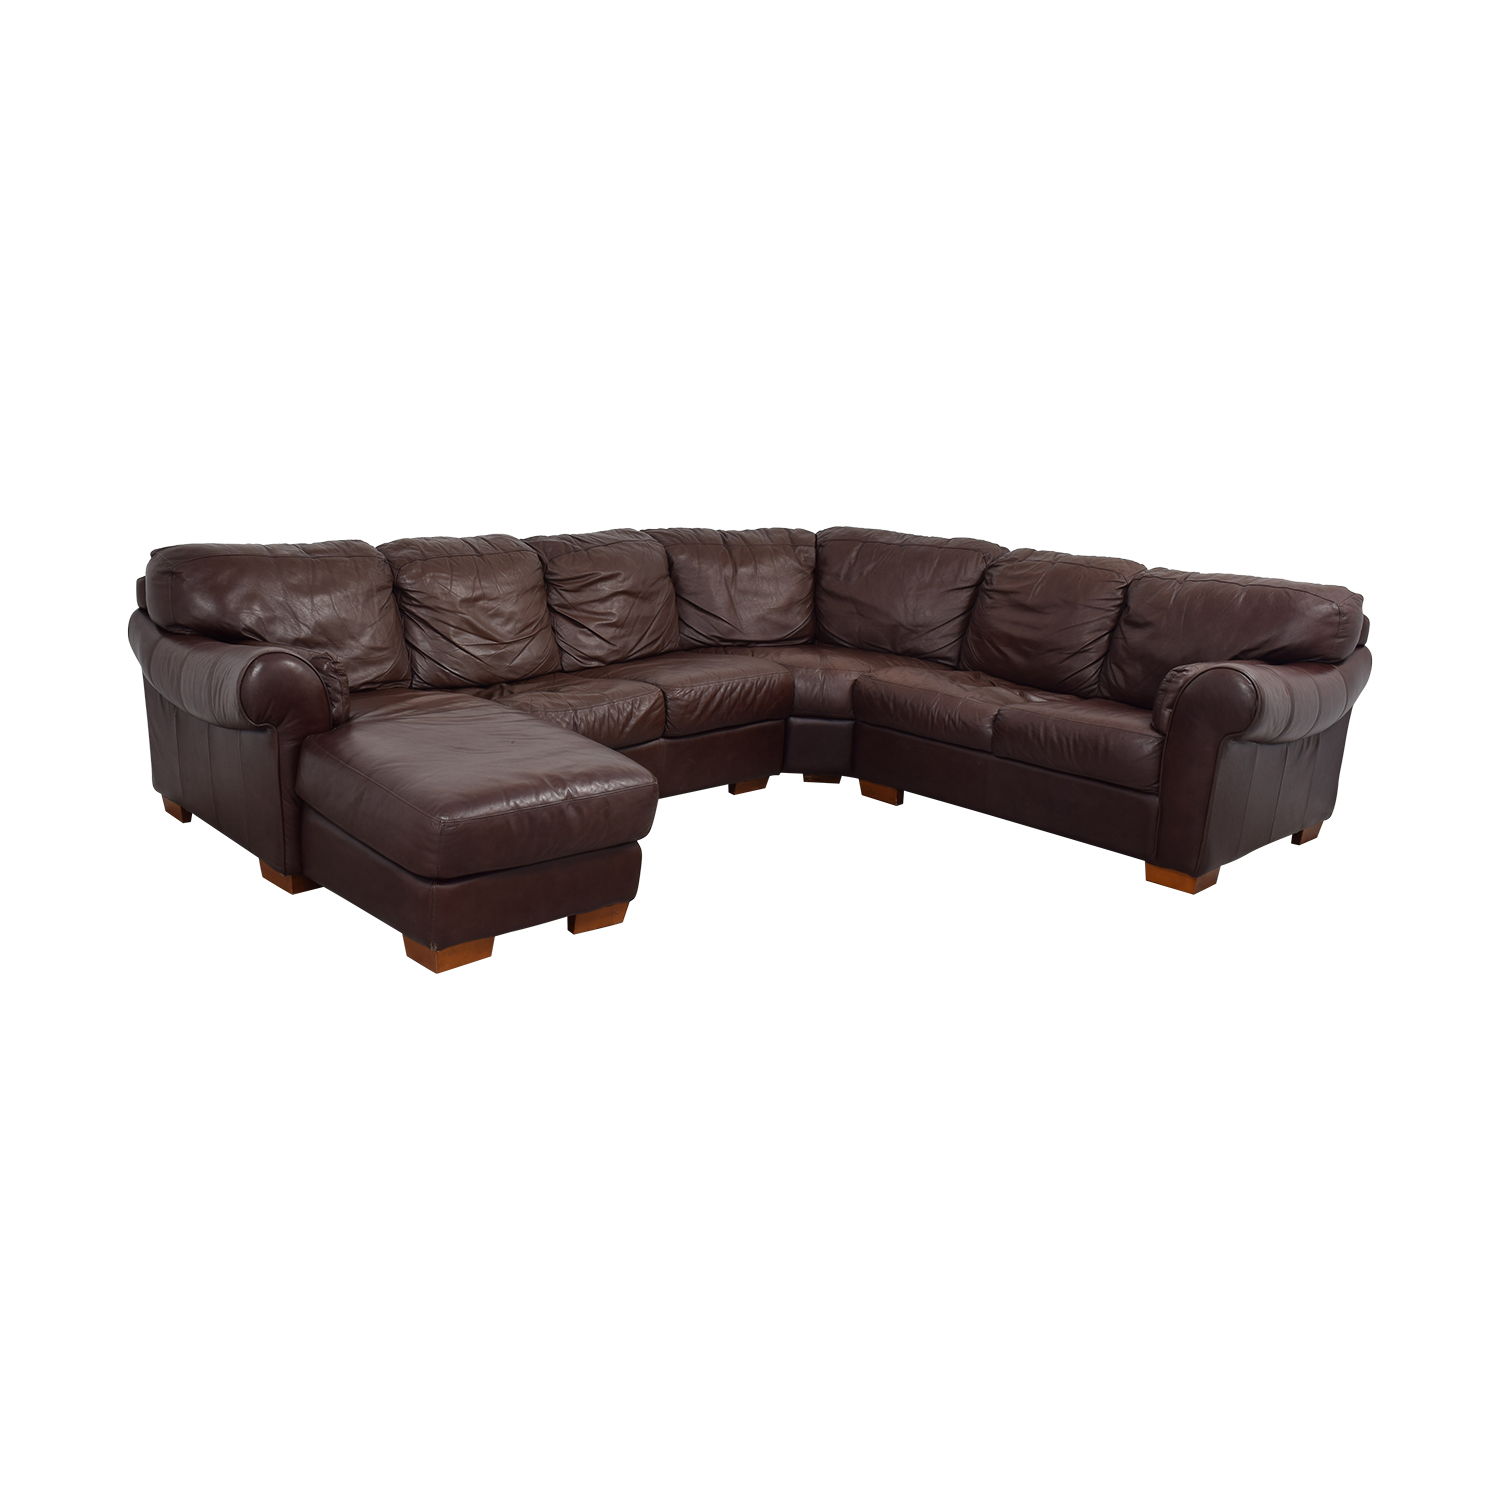 Divani Leather Sofa For Sale 89 Off Chateau D Ax Chateau D Ax Divani Brown Leather L